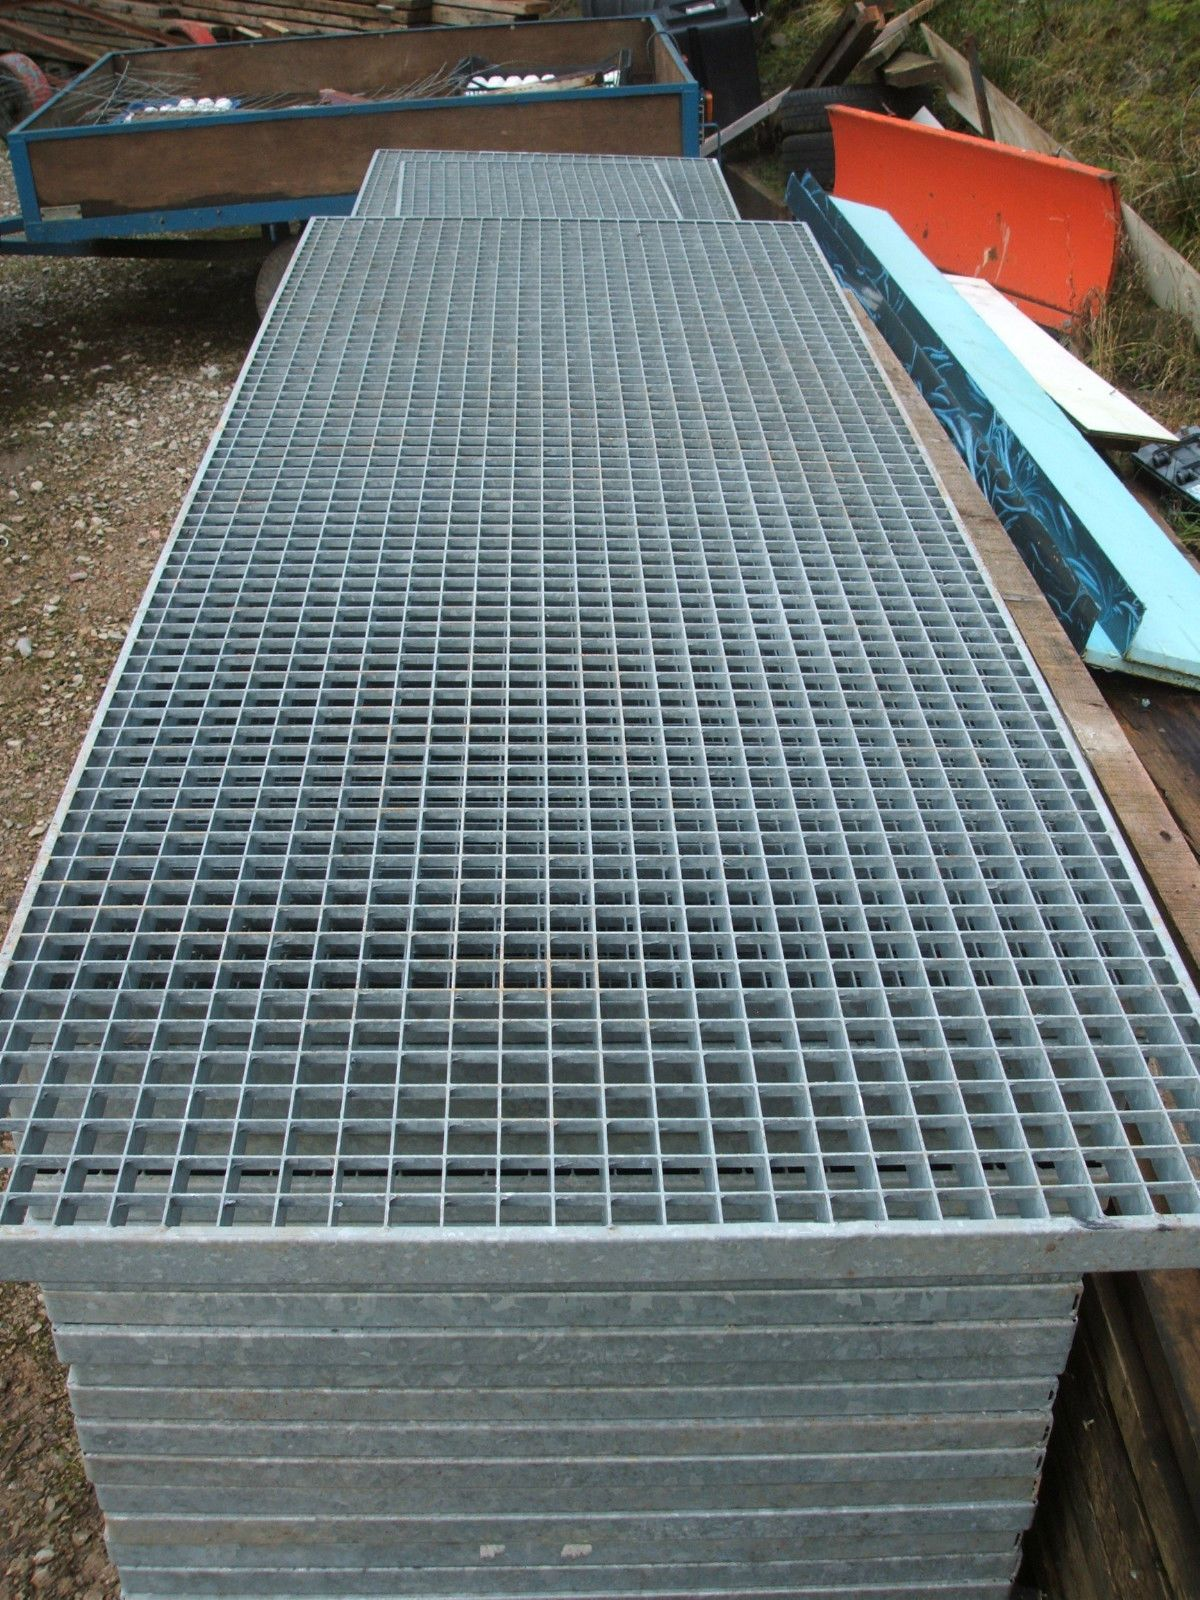 Floor Forge Walkway Steel Grating 69 Quot X 33 1 2 Quot Mezzanine